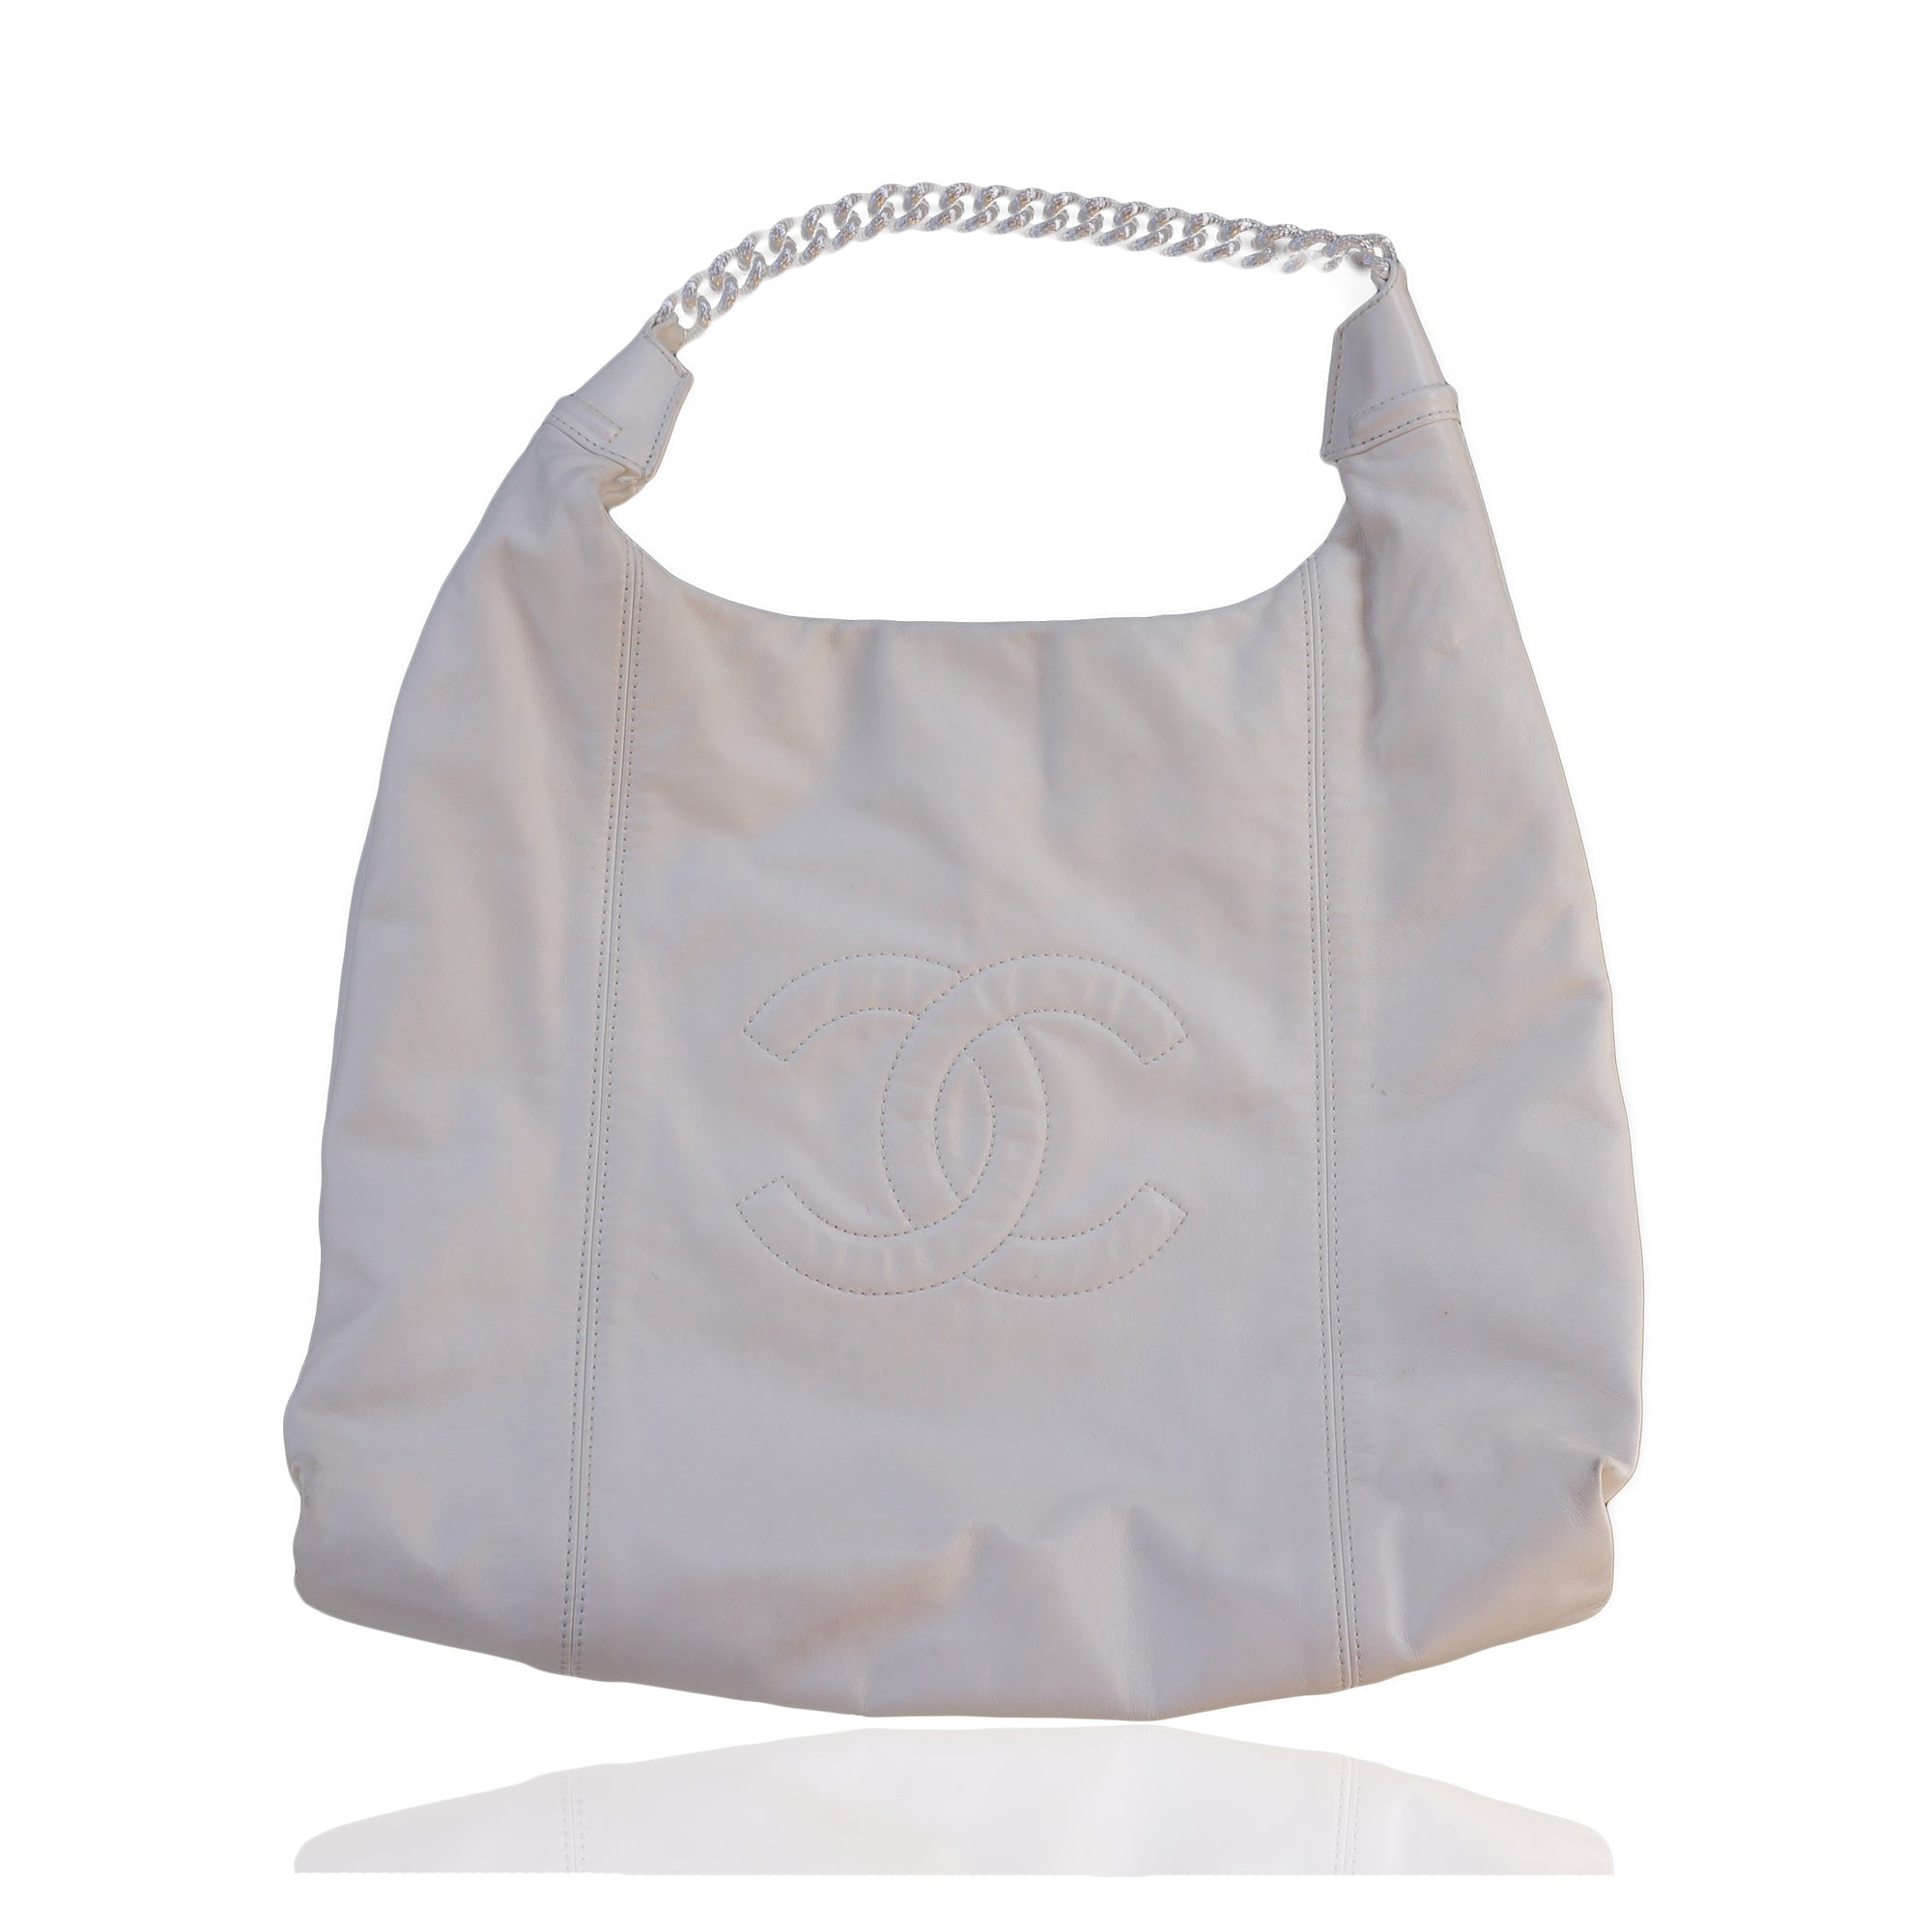 78ac98e69aa3 CHANEL SOFT   CHAIN LAMBSKIN LEATHER IVORY HOBO BAG Shop the best value on authentic  designer ...